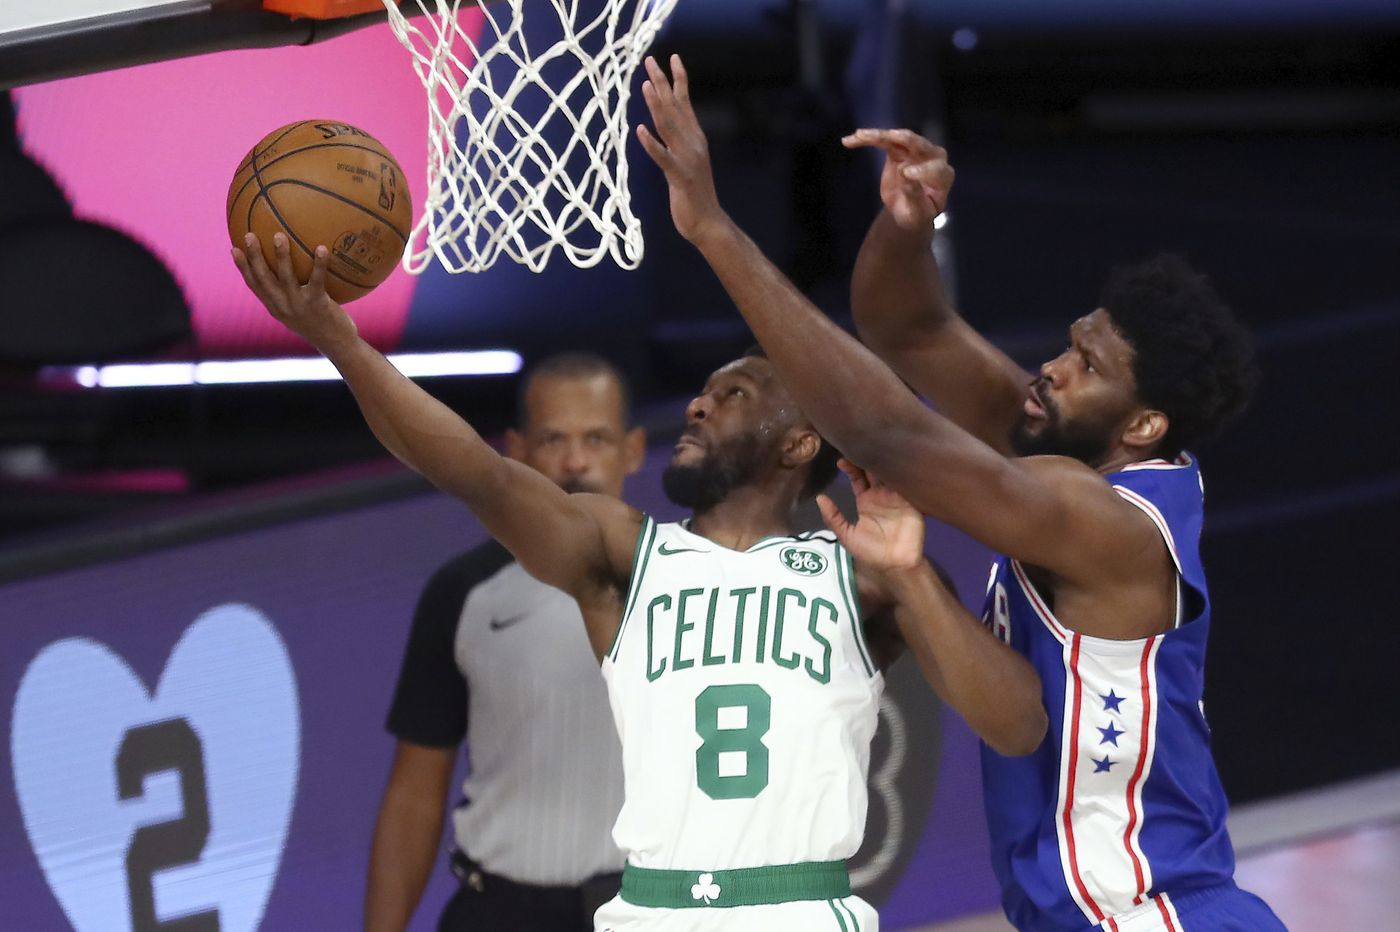 Sixers-Celtics best-worst: Kemba Walker schools 76ers, more three-point shooting woes, and an embarrassing sweep